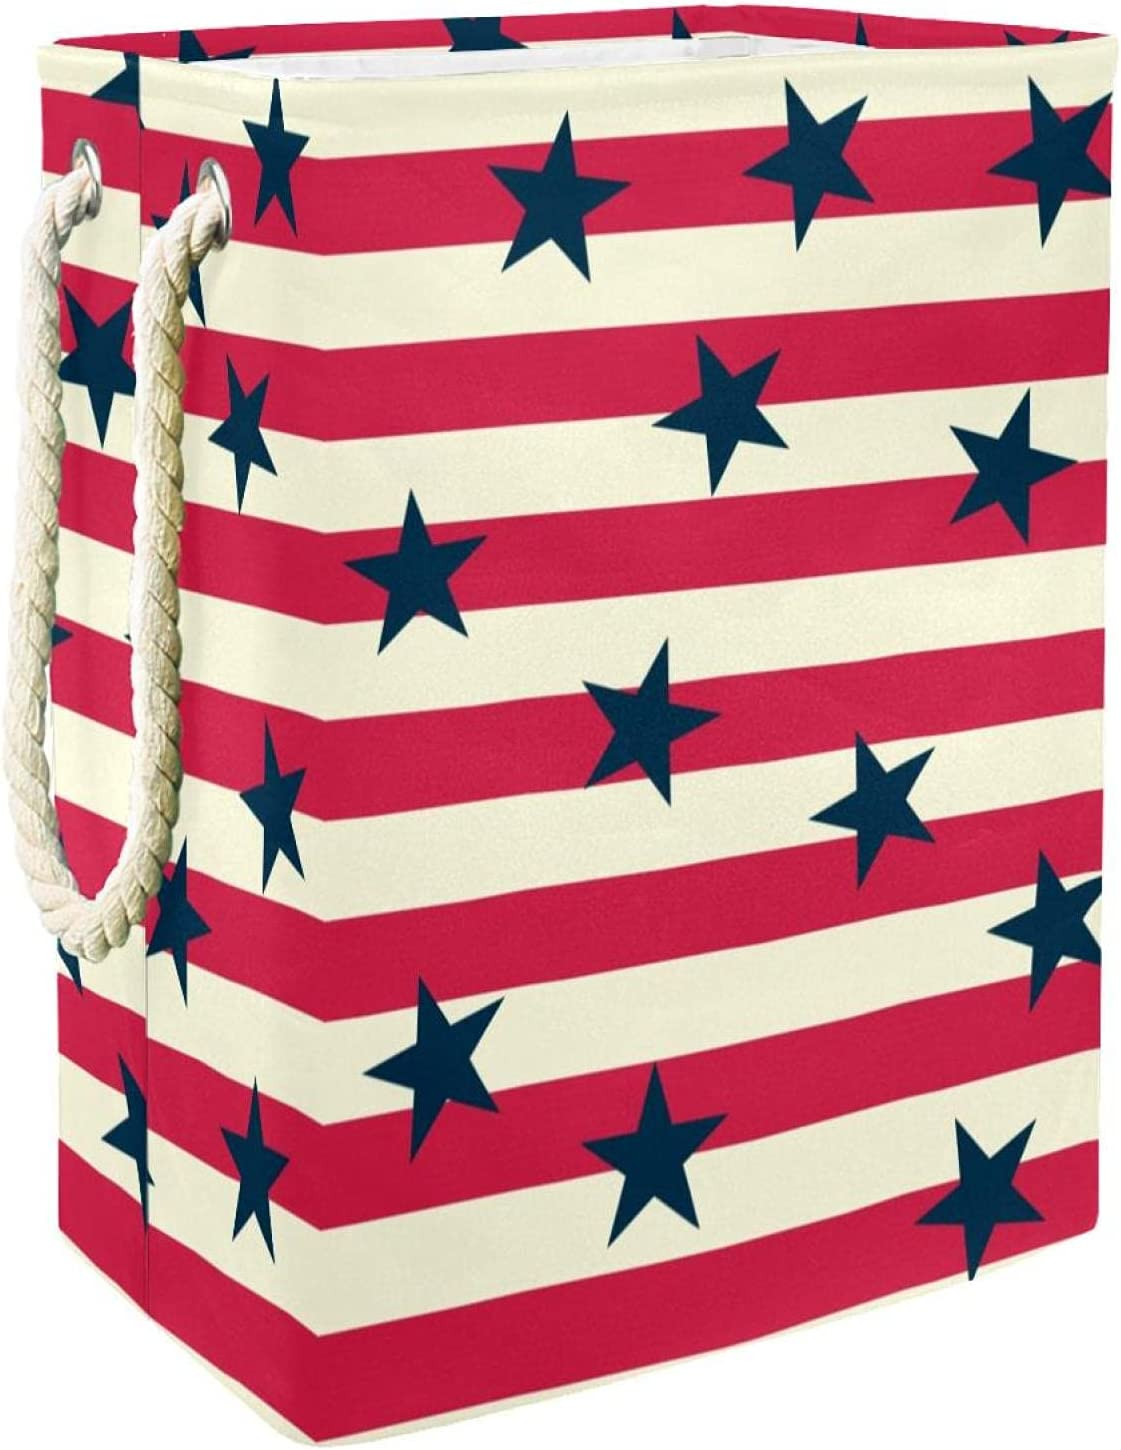 Red White Striped Finally popular brand Navy Max 70% OFF Stars Hamper Handles With Pattern Laundry